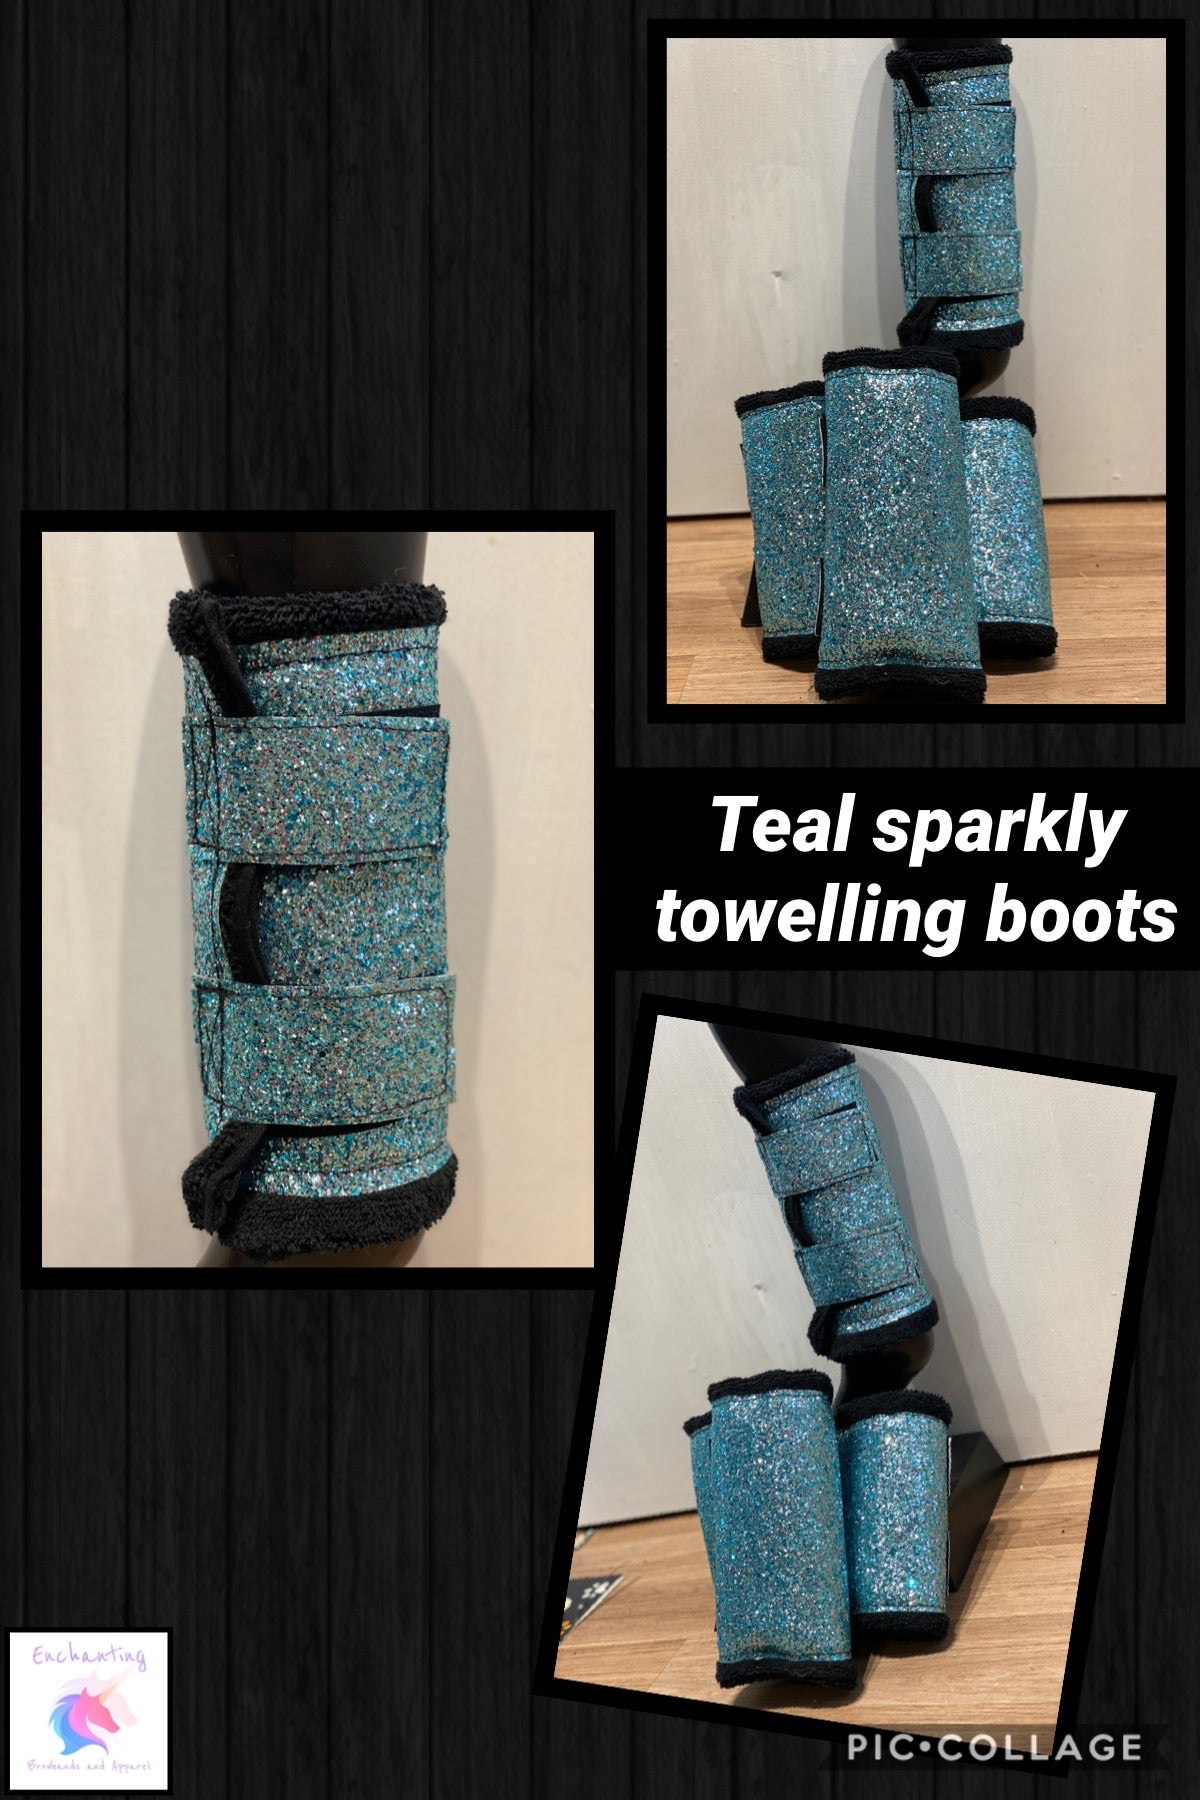 Towelling boots (set of 2)